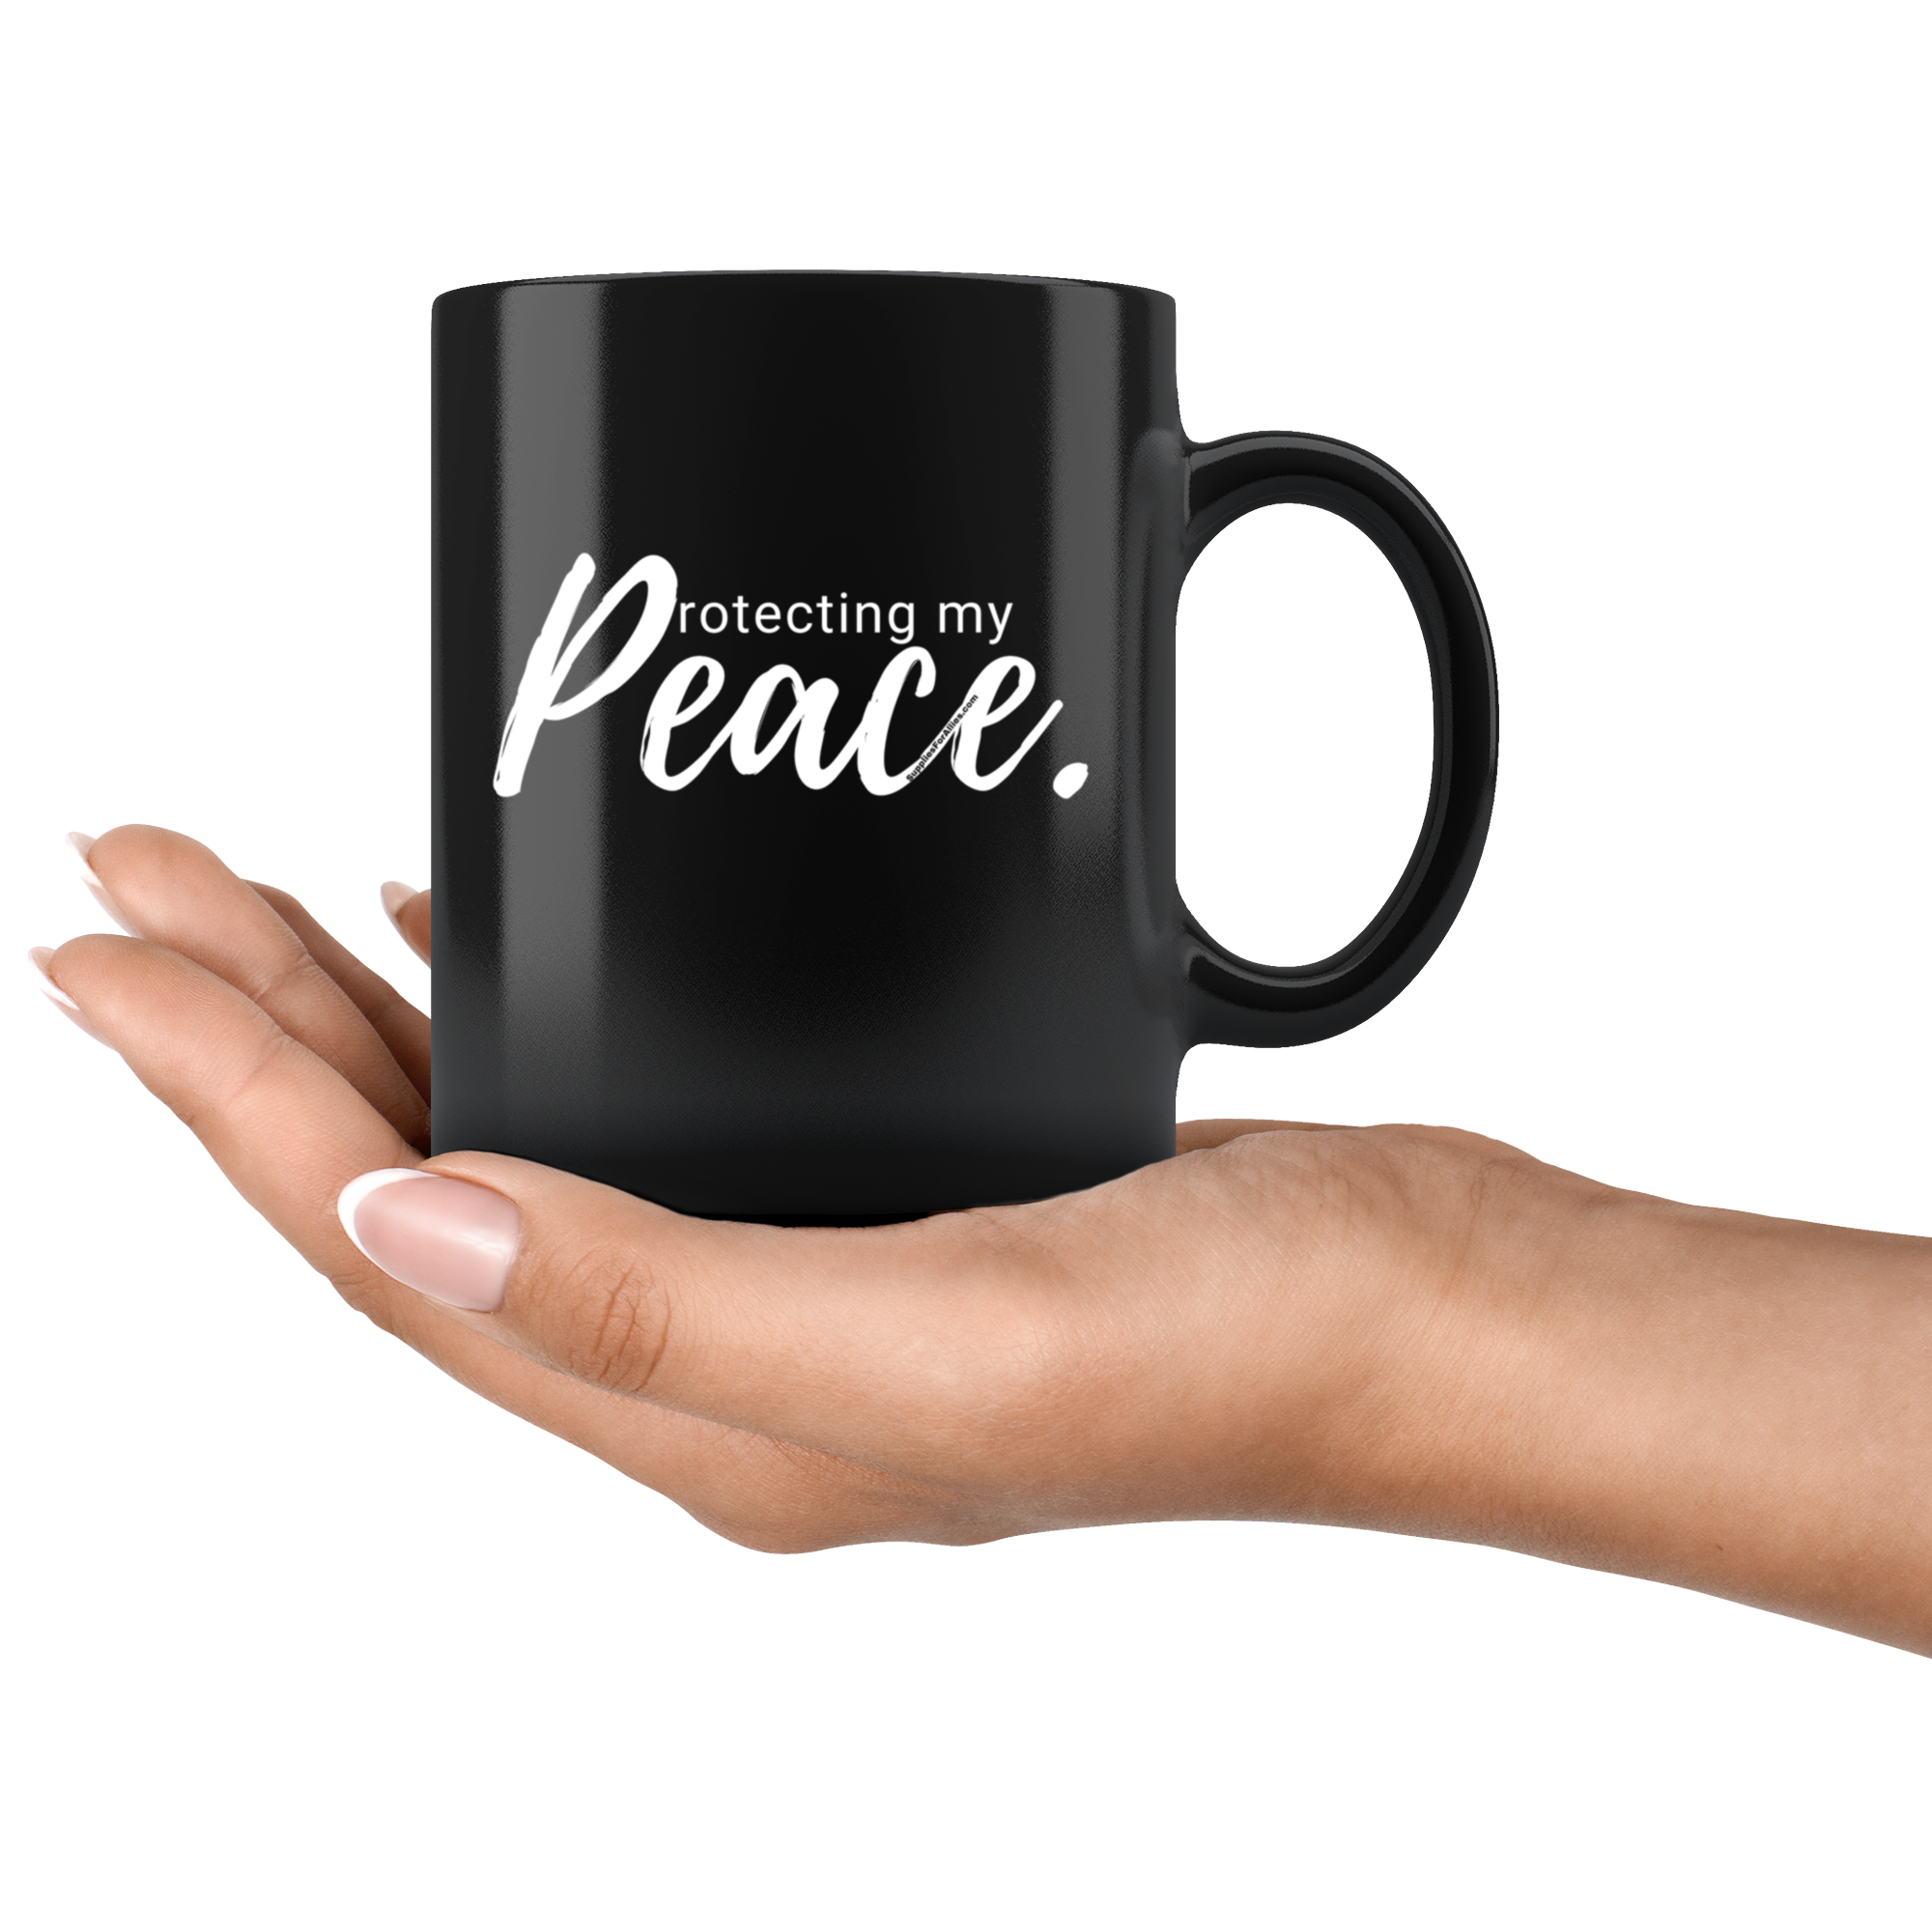 Protecting my Peace Mug - Black